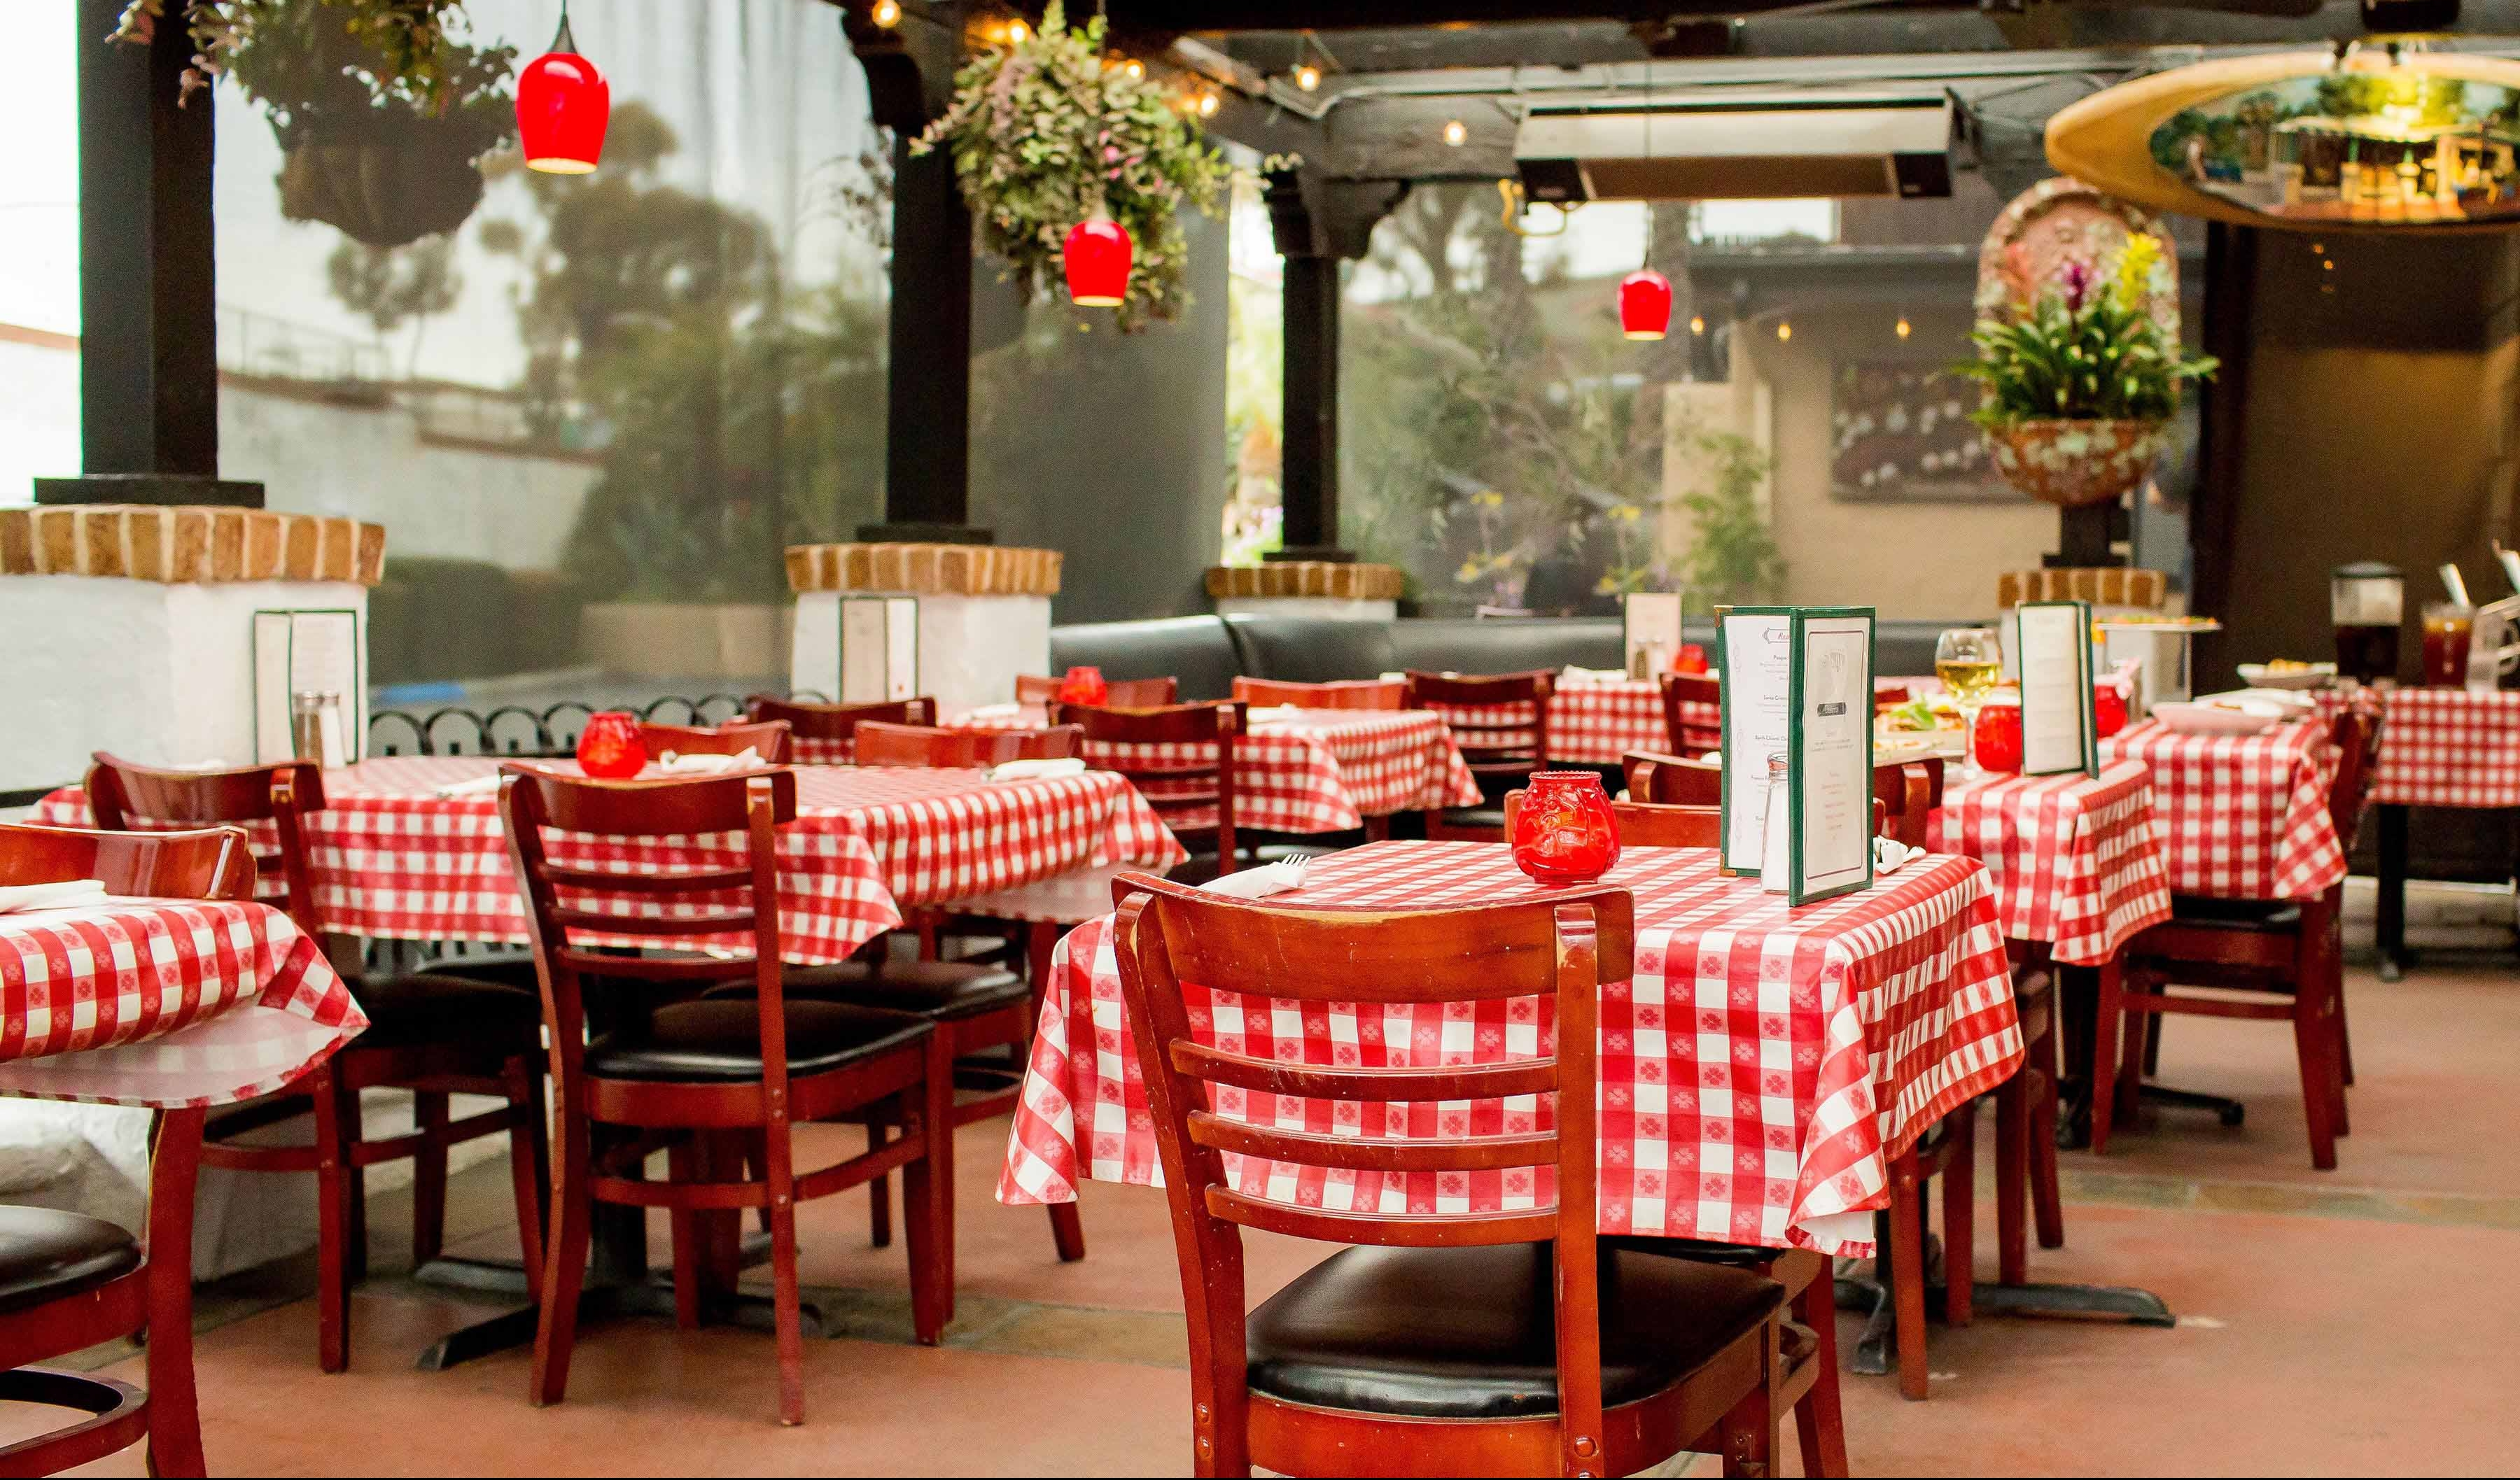 Sonny's Outdoor Covered patio seating with red and white table clothes and hanging lights